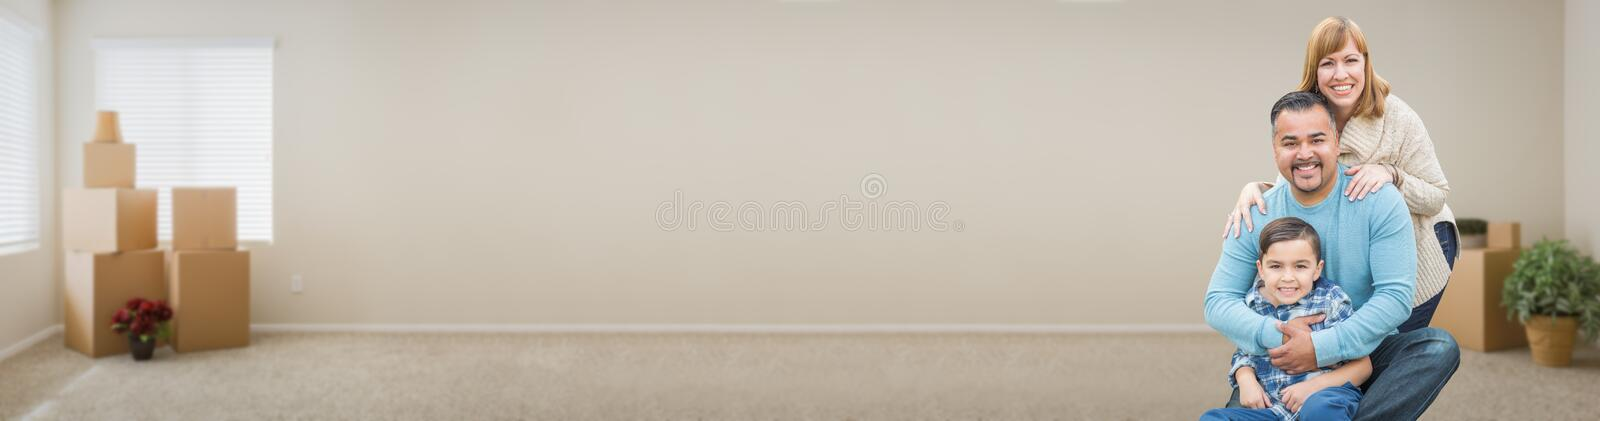 Young Mixed Race Family Inside Room with Boxes Banner. Mixed Race Family Inside Room with Boxes Banner royalty free stock photo